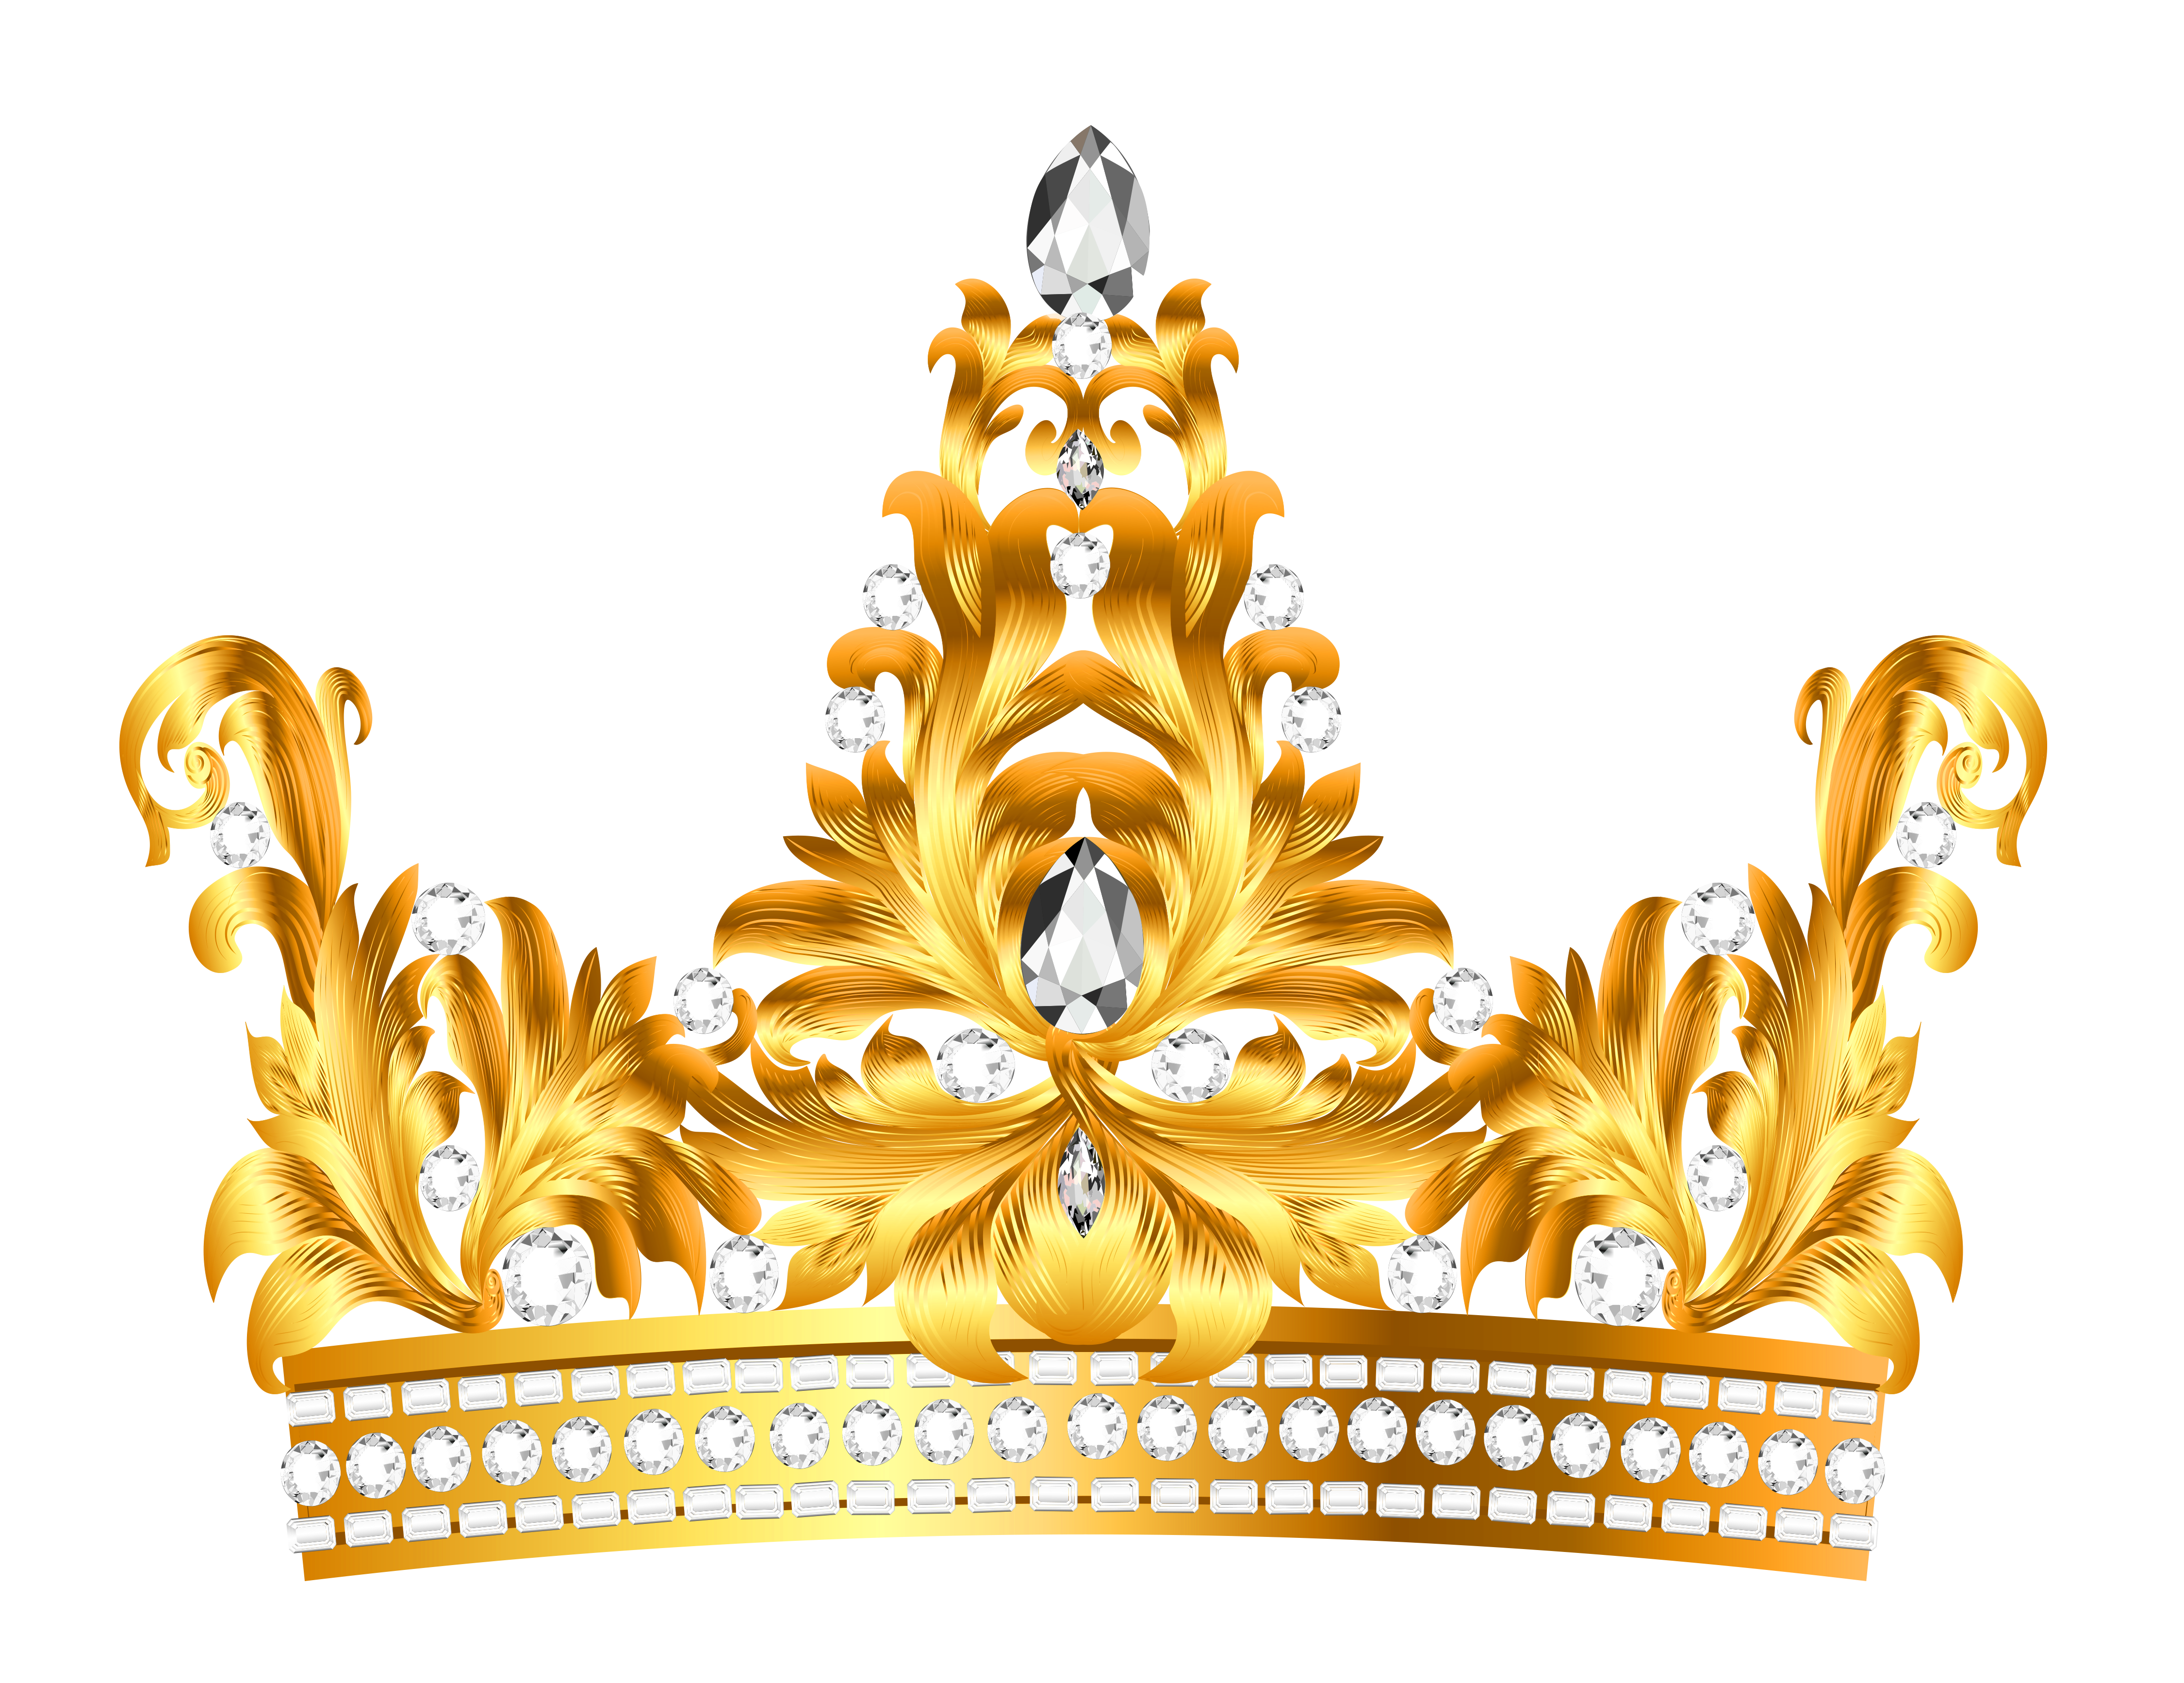 Transparent crowns rose gold. And diamonds crown png